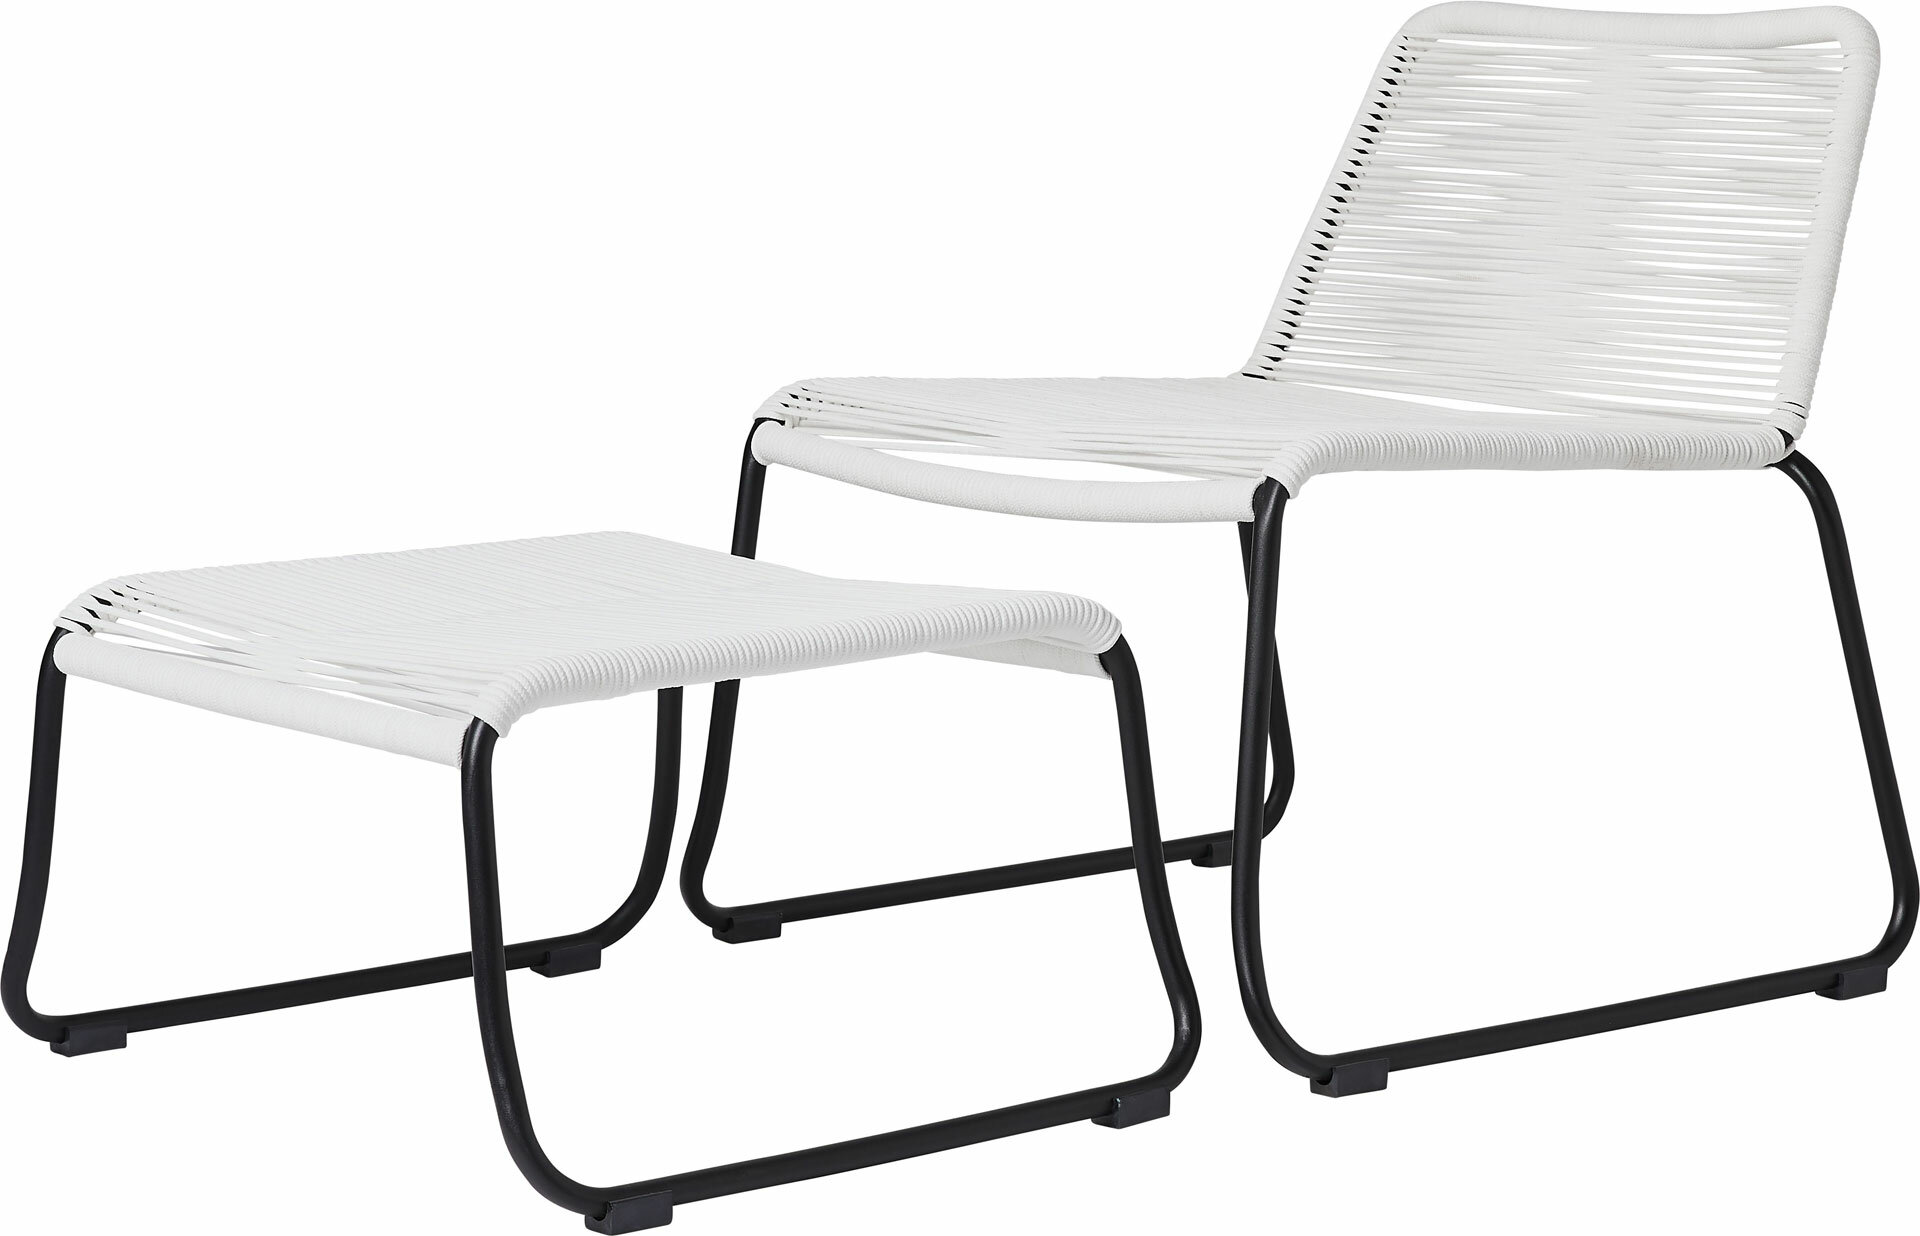 outdoor chair with ottoman. Outdoor Chair With Ottoman